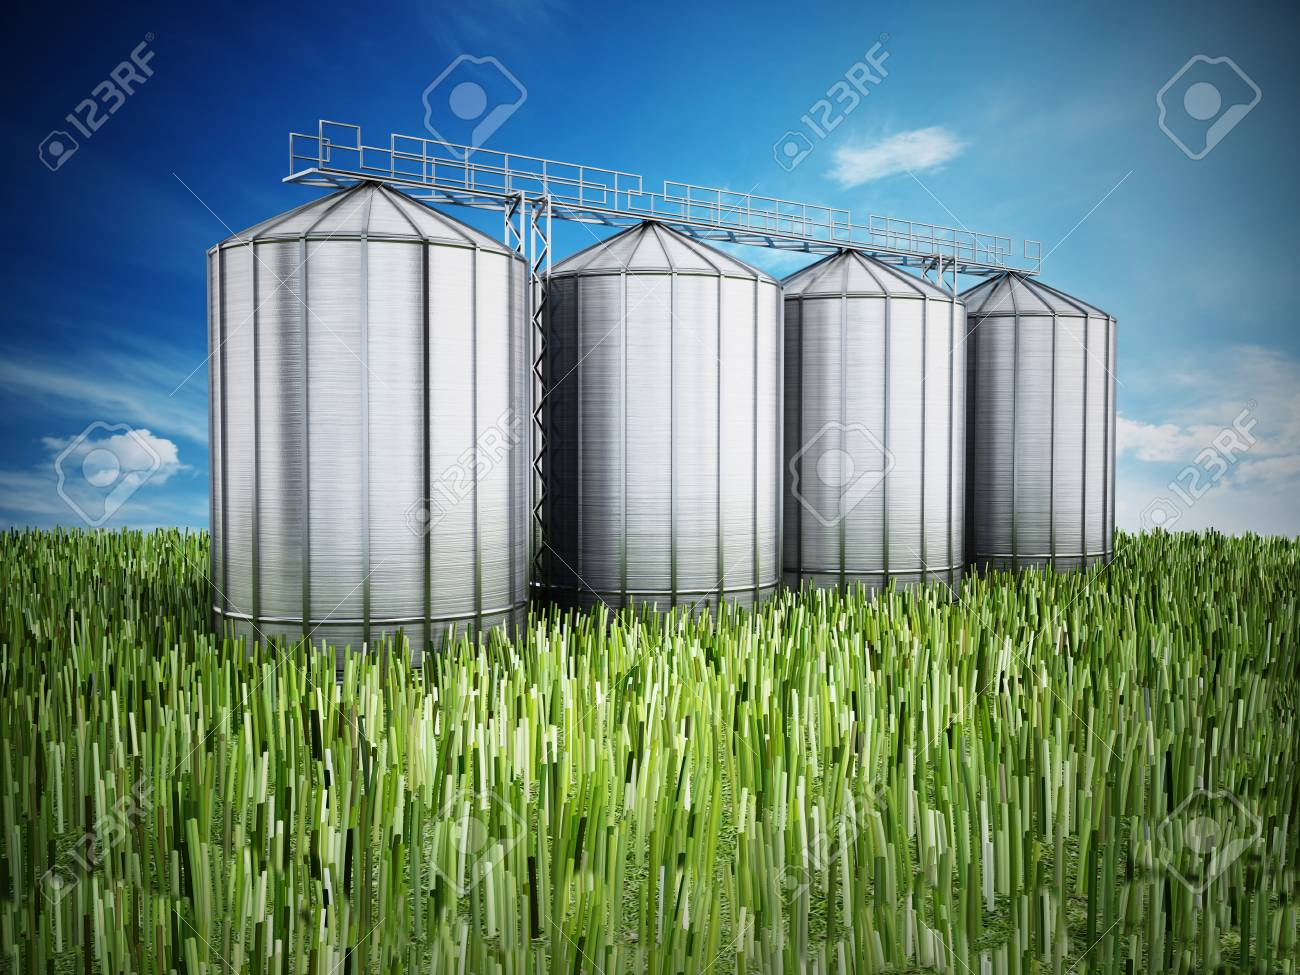 Agriculture Grain Silos On Grass Under Blue Sky  3D